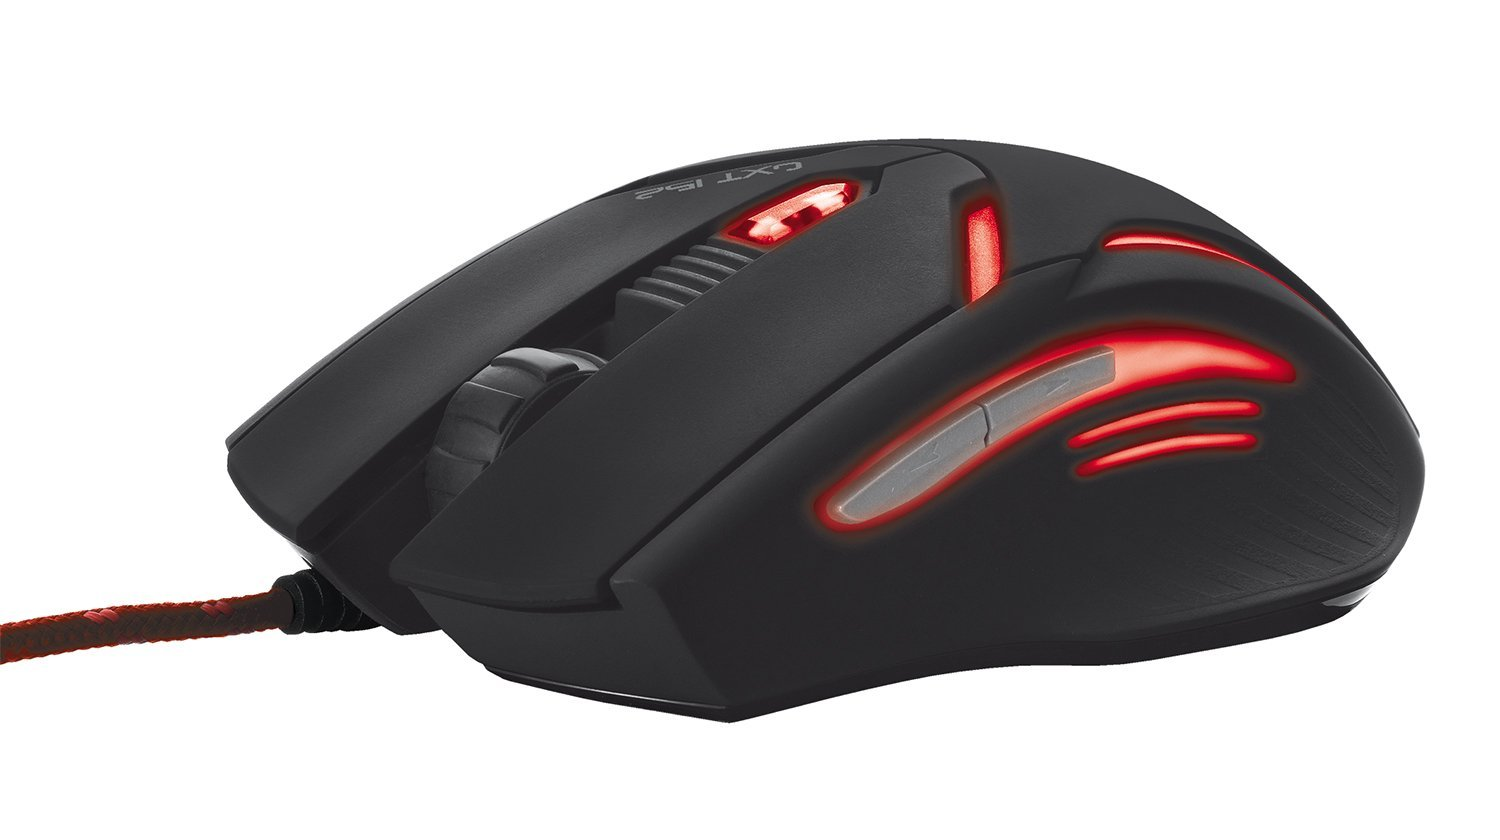 Trust GXT 152 6-Button Gaming Mouse with Adjustable LED and 4 DPI Levels, Black